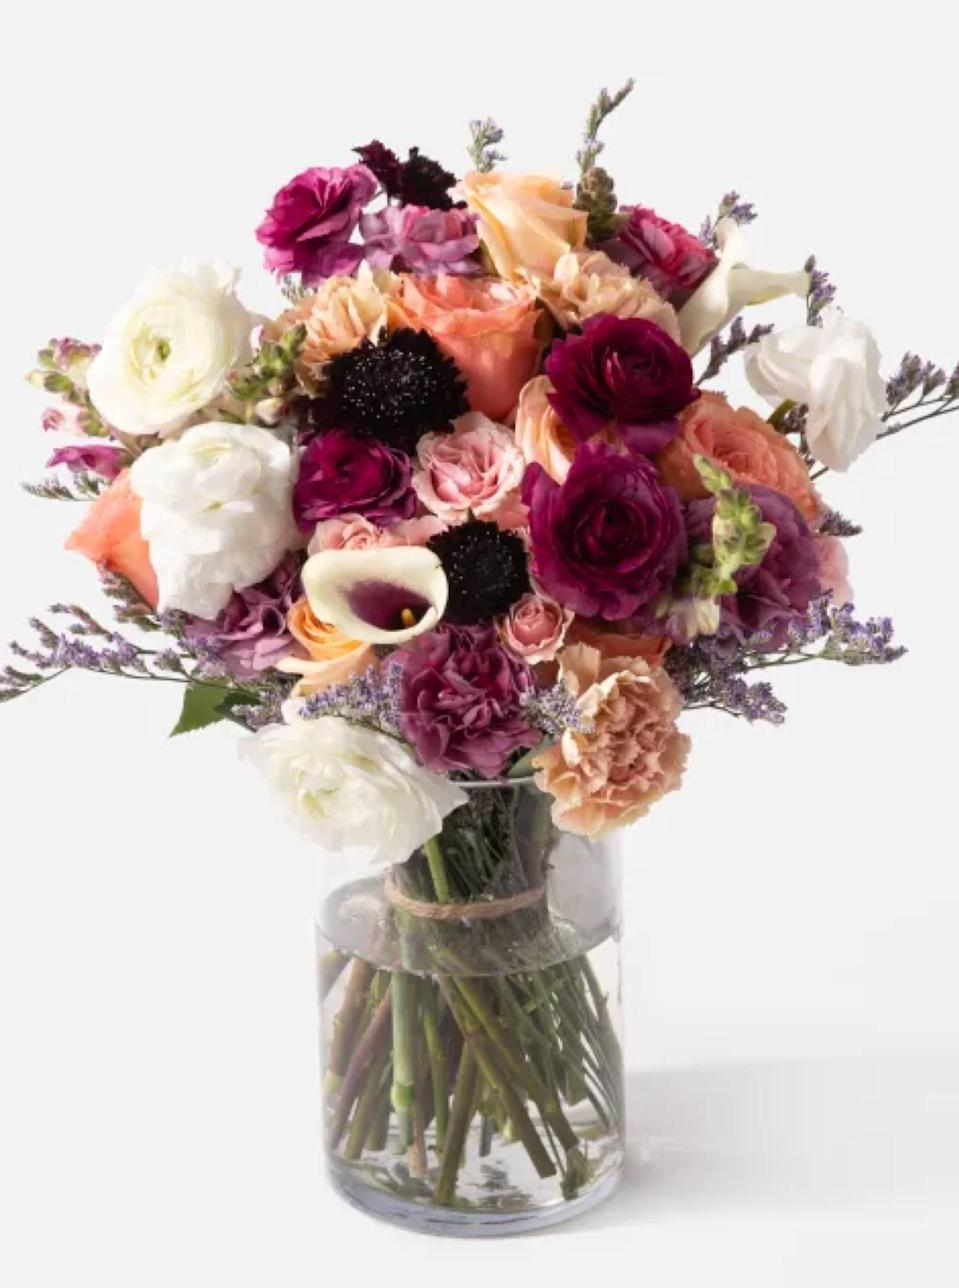 "Calla lilies, sprigs of snapdragons, and a mix of pink and peach roses make this UrbanStems bouquet dramatic in a good way. Search by delivery date to make sure your gift arrives on time—bonus points if you pair it with a <a href=""https://www.glamour.com/gallery/cool-vases?mbid=synd_yahoo_rss"" rel=""nofollow noopener"" target=""_blank"" data-ylk=""slk:cool vase"" class=""link rapid-noclick-resp"">cool vase</a> and <a href=""https://www.glamour.com/gallery/best-winter-candles?mbid=synd_yahoo_rss"" rel=""nofollow noopener"" target=""_blank"" data-ylk=""slk:candle"" class=""link rapid-noclick-resp"">candle</a>. $150, The Manhattan. <a href=""https://urbanstems.com/products/flowers/the-manhattan/FLRL-B-00010.html"" rel=""nofollow noopener"" target=""_blank"" data-ylk=""slk:Get it now!"" class=""link rapid-noclick-resp"">Get it now!</a>"